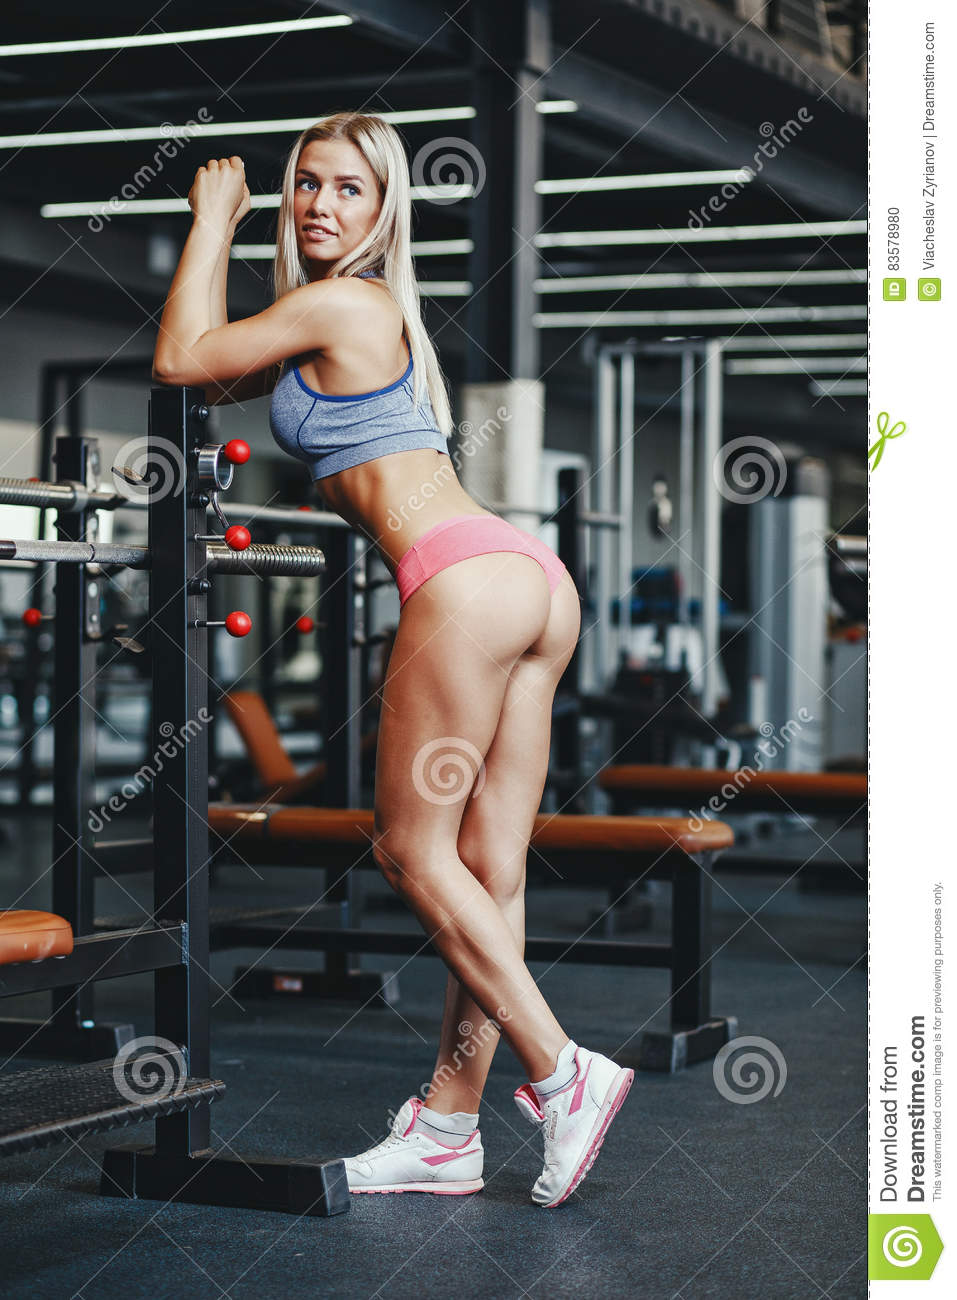 Fitnessstudio Workout Blonde Teens